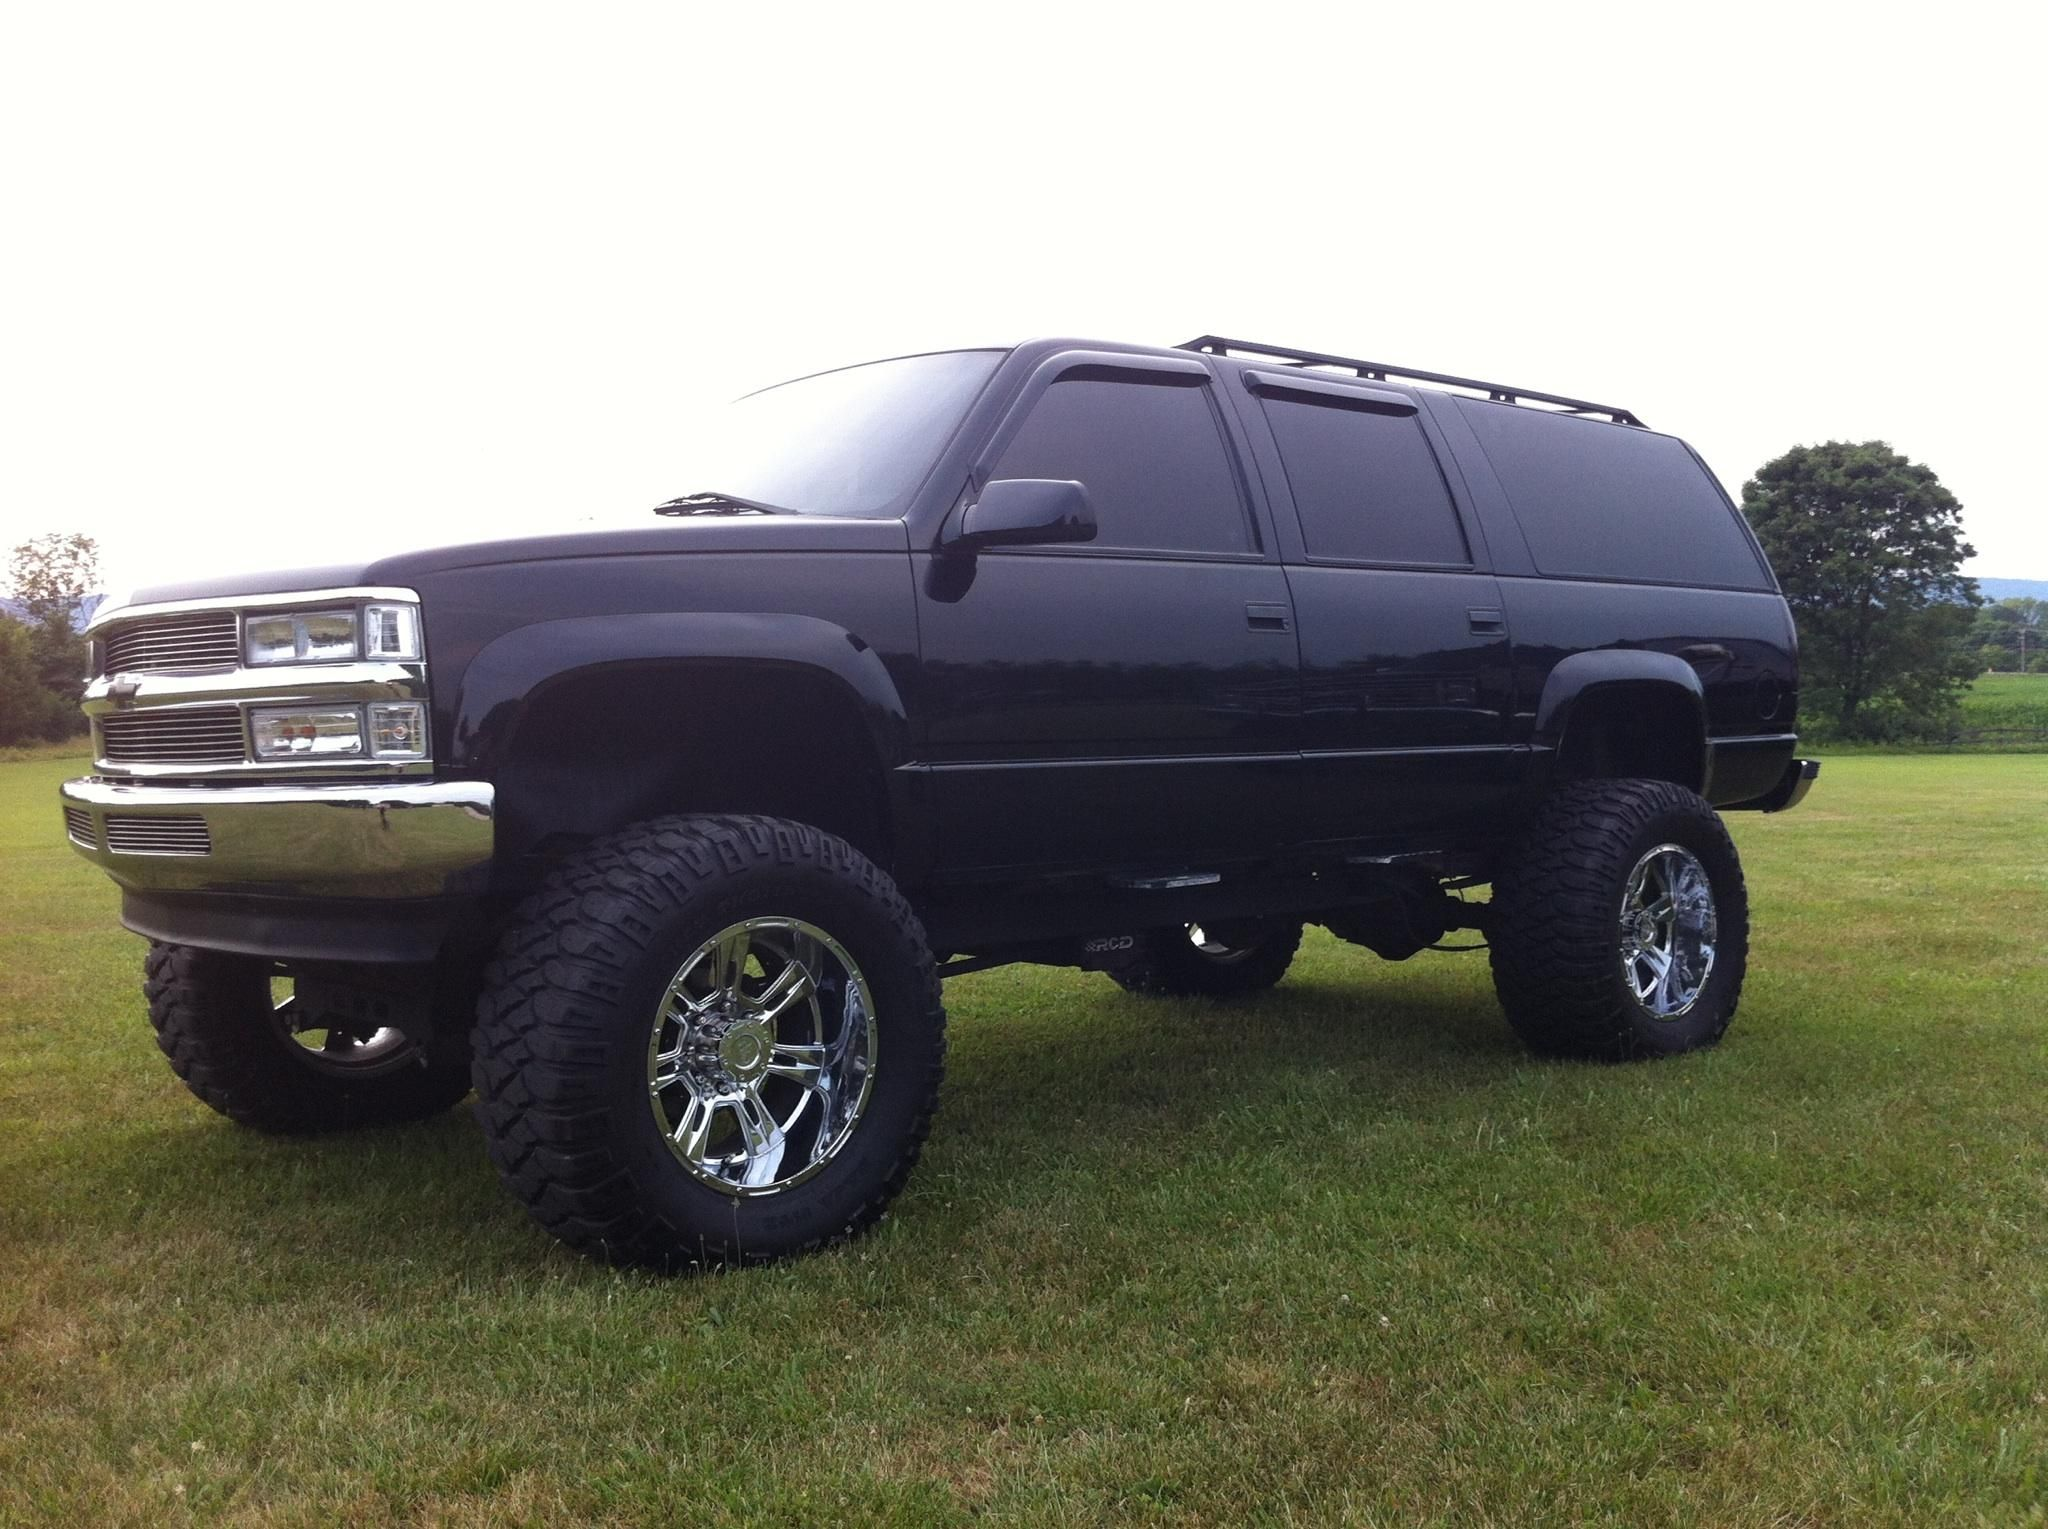 1999 K2500 Chevy Suburban 454 On 38 Mickey Thompsons Chevy Suburban Chevy Lifted Chevy Trucks